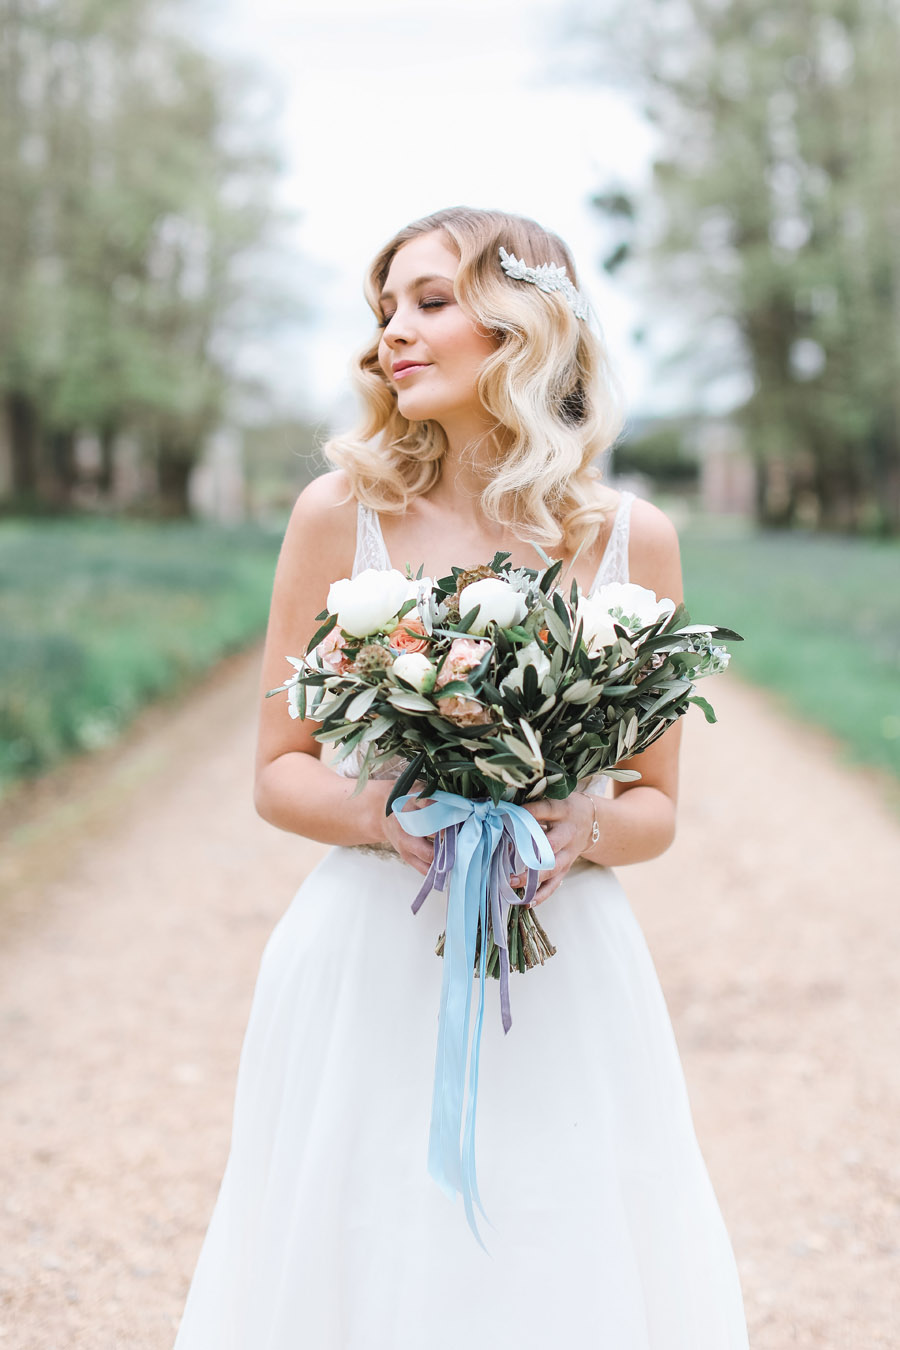 Romantic wedding ideas from Hale Park, photo by Charlotte Wise Photography (28)